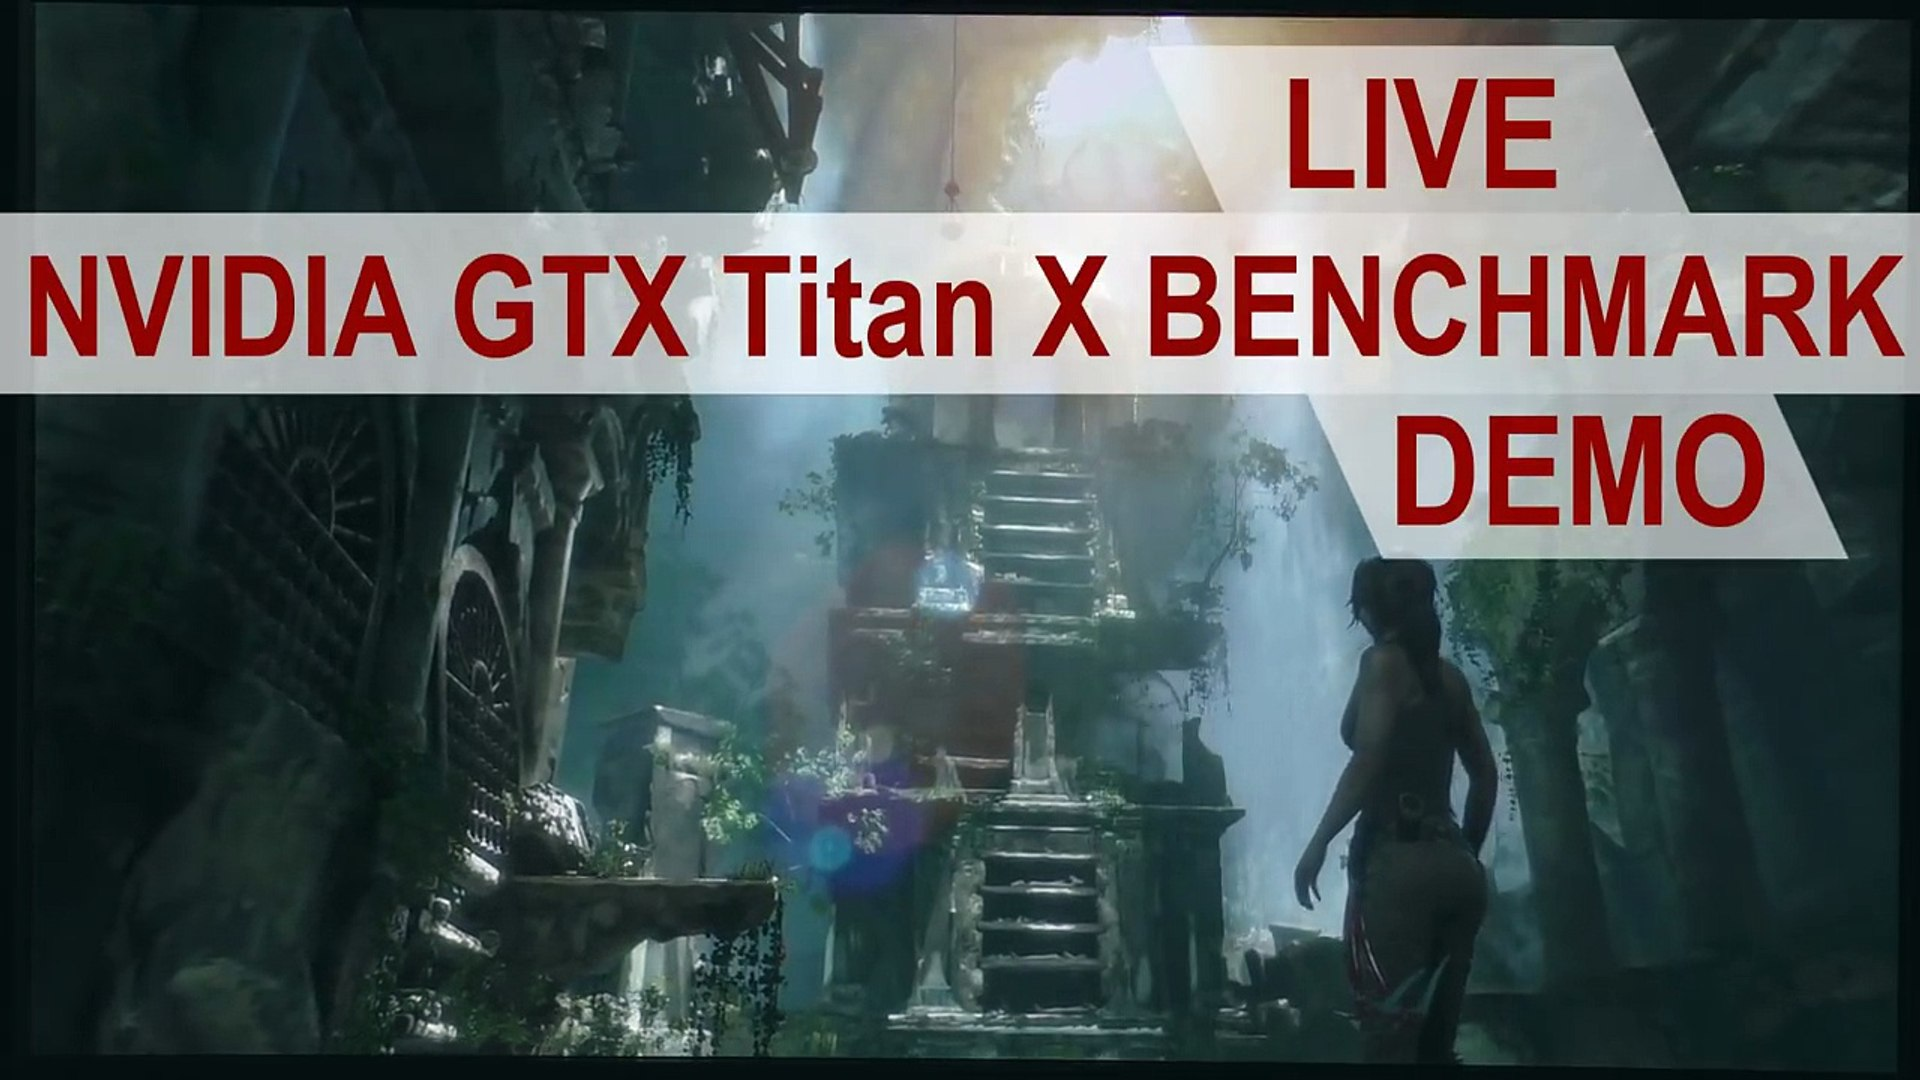 NVIDIA GTX Titan X: Rise of the Tomb Raider (Live Benchmark Demo)